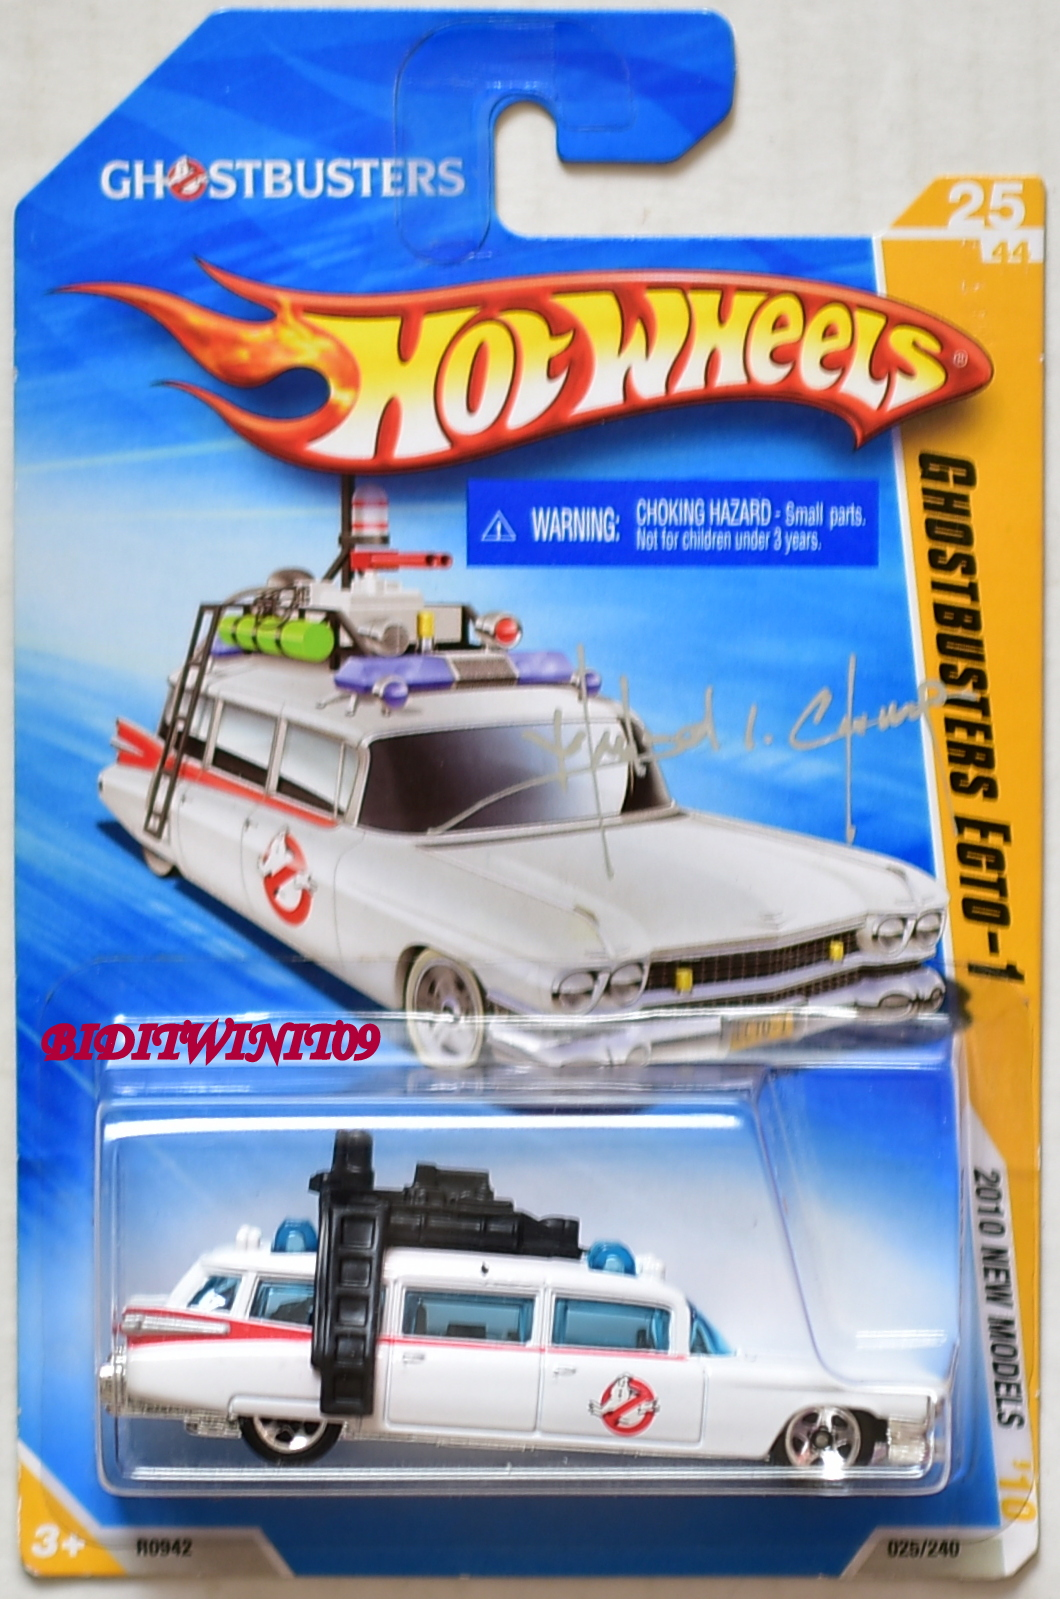 HOT WHEELS 2010 NEW MODELS GHOSTBUSTERS ECTO-1 SIGNED BY MANSON L. CHEUNG